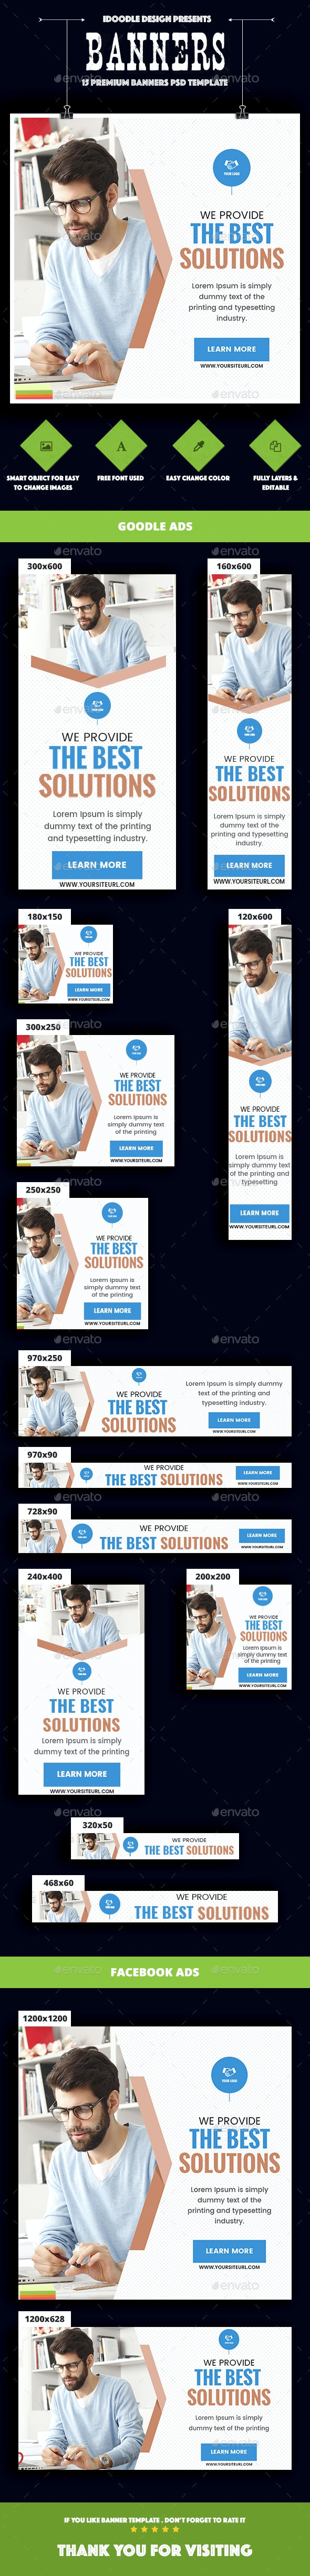 Multipurpose, Corporate, Business Banners Ad - Banners & Ads Web Elements